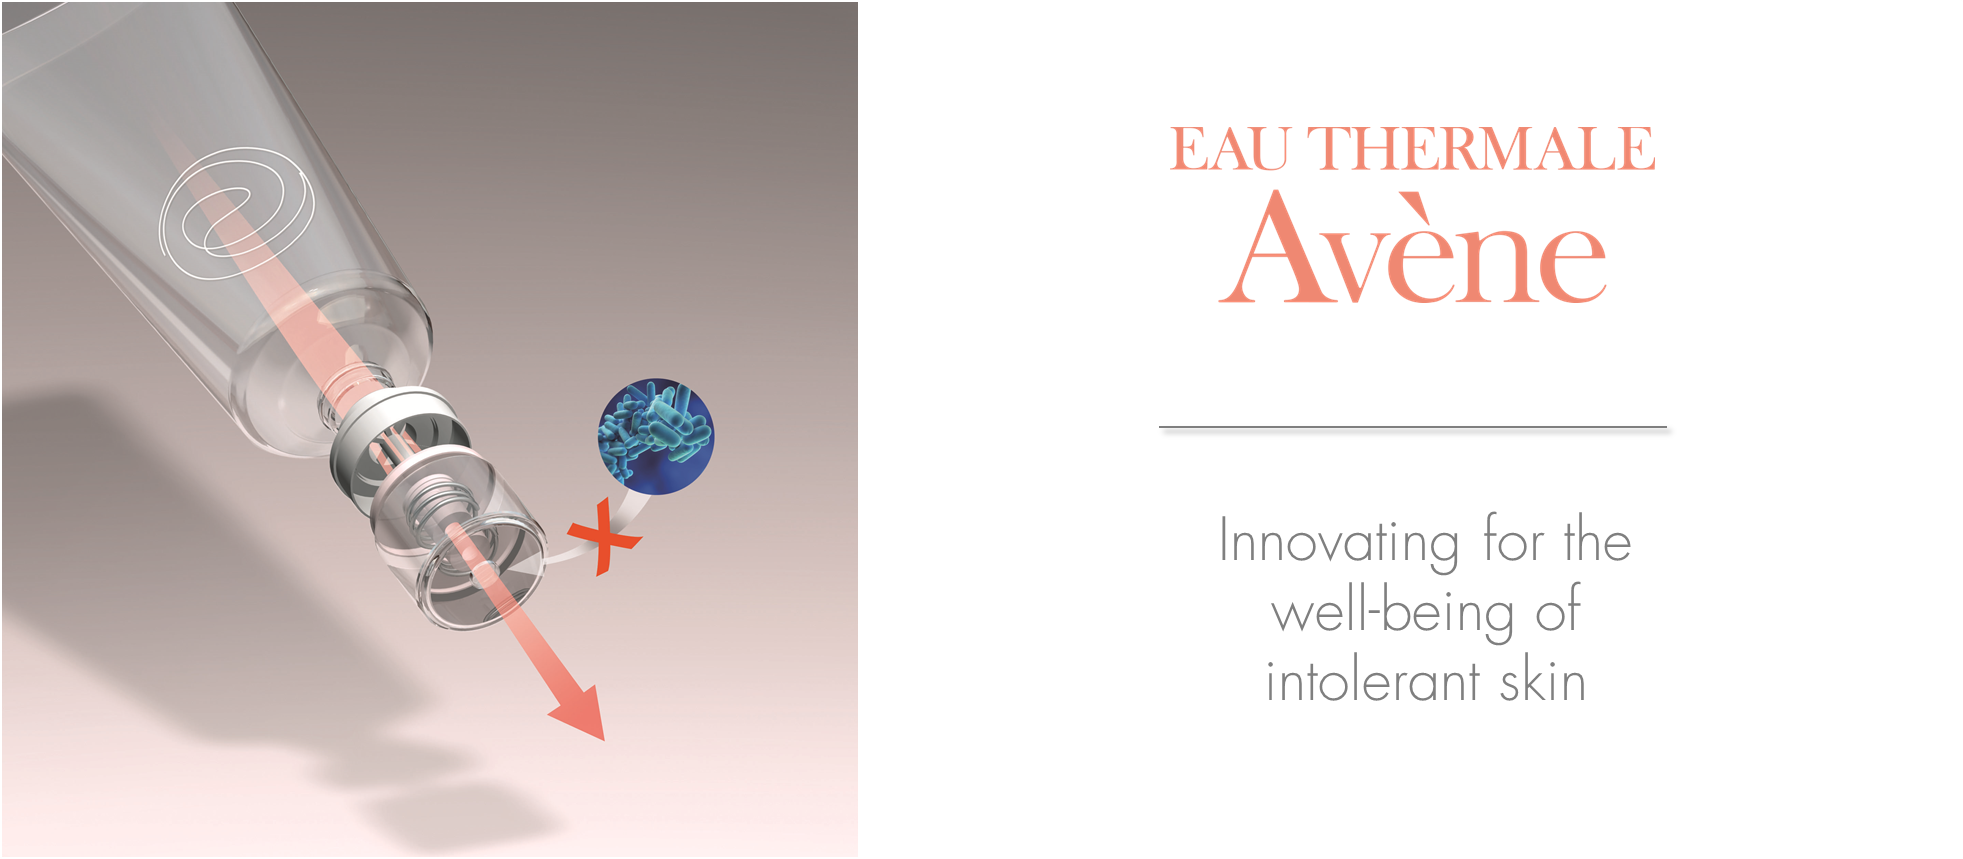 Innovating for the well-being of intolerant skin